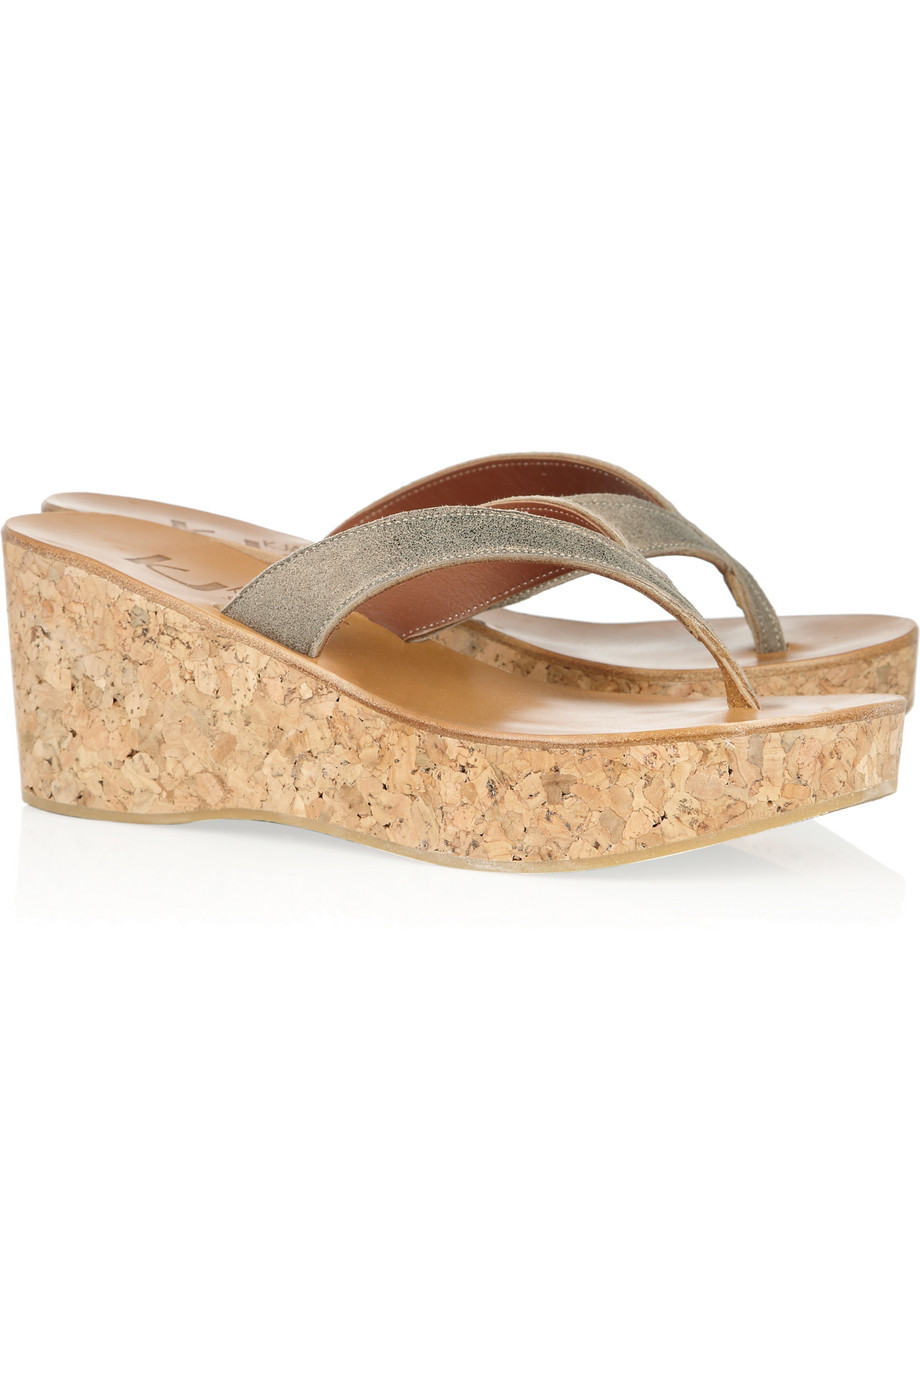 7fbcbeb24950 Lyst - K. Jacques Diorite Leather and Cork Wedge Sandals in Metallic